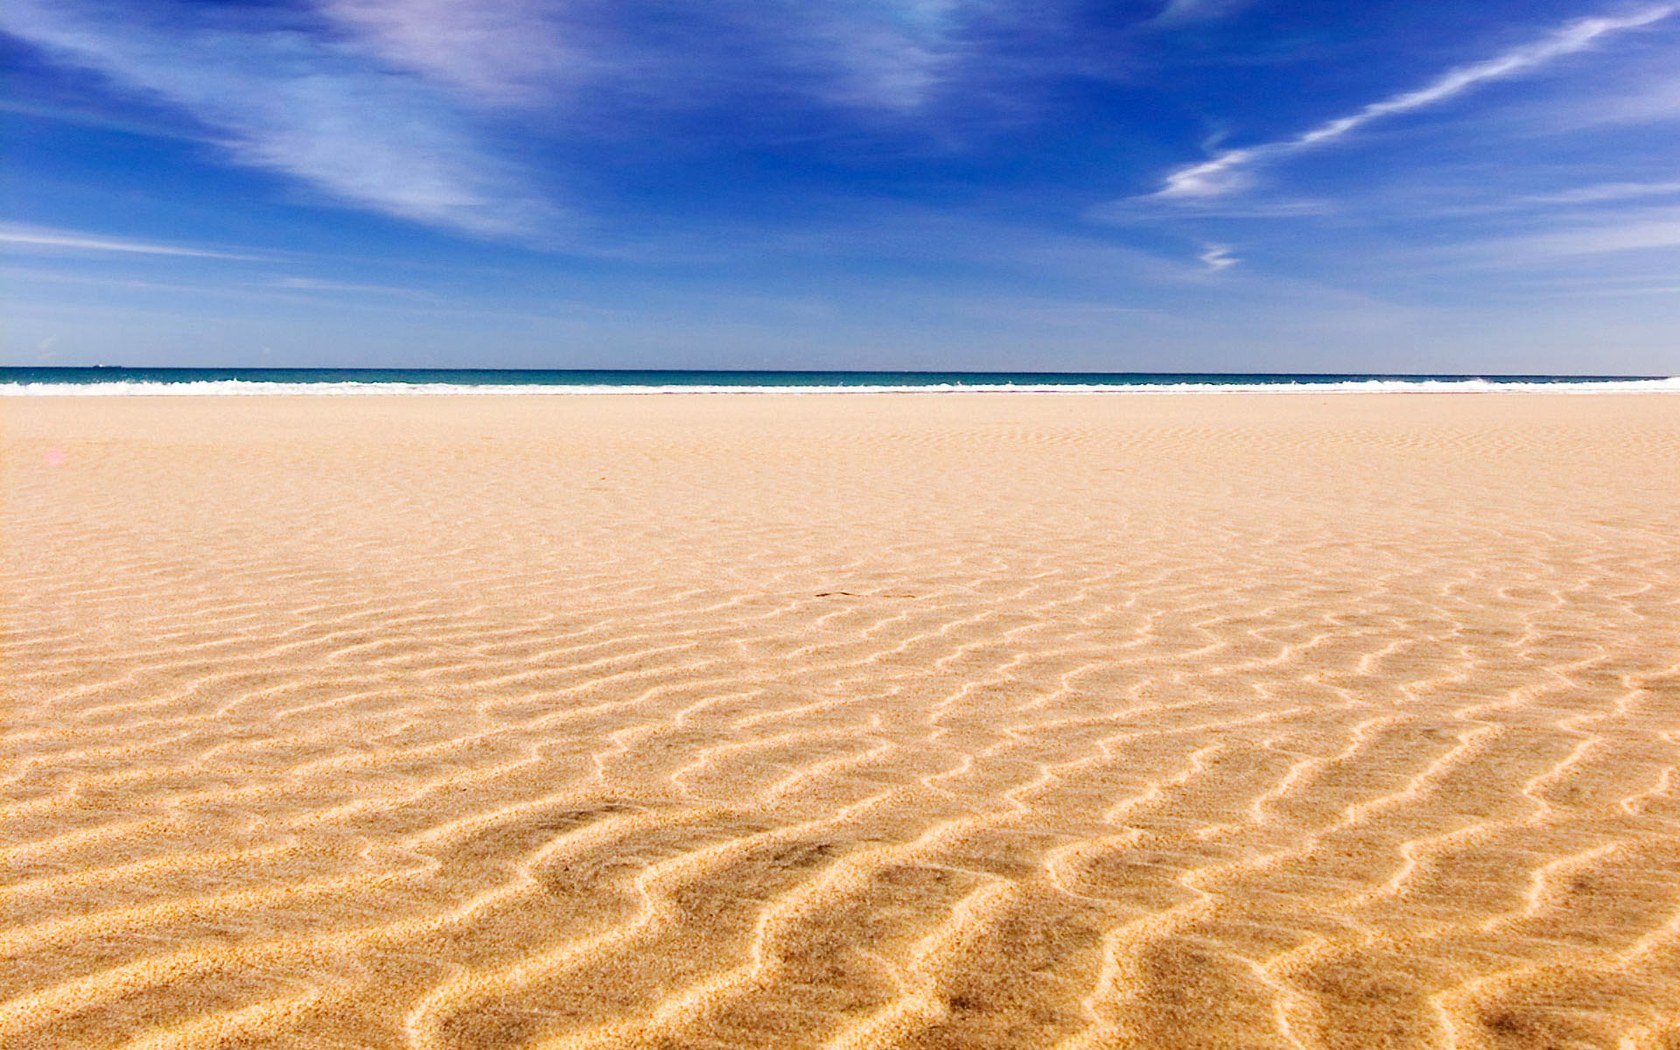 Spain, Sotavento Beach, Fuerteventura, Canary Islands 1680x1050 NO